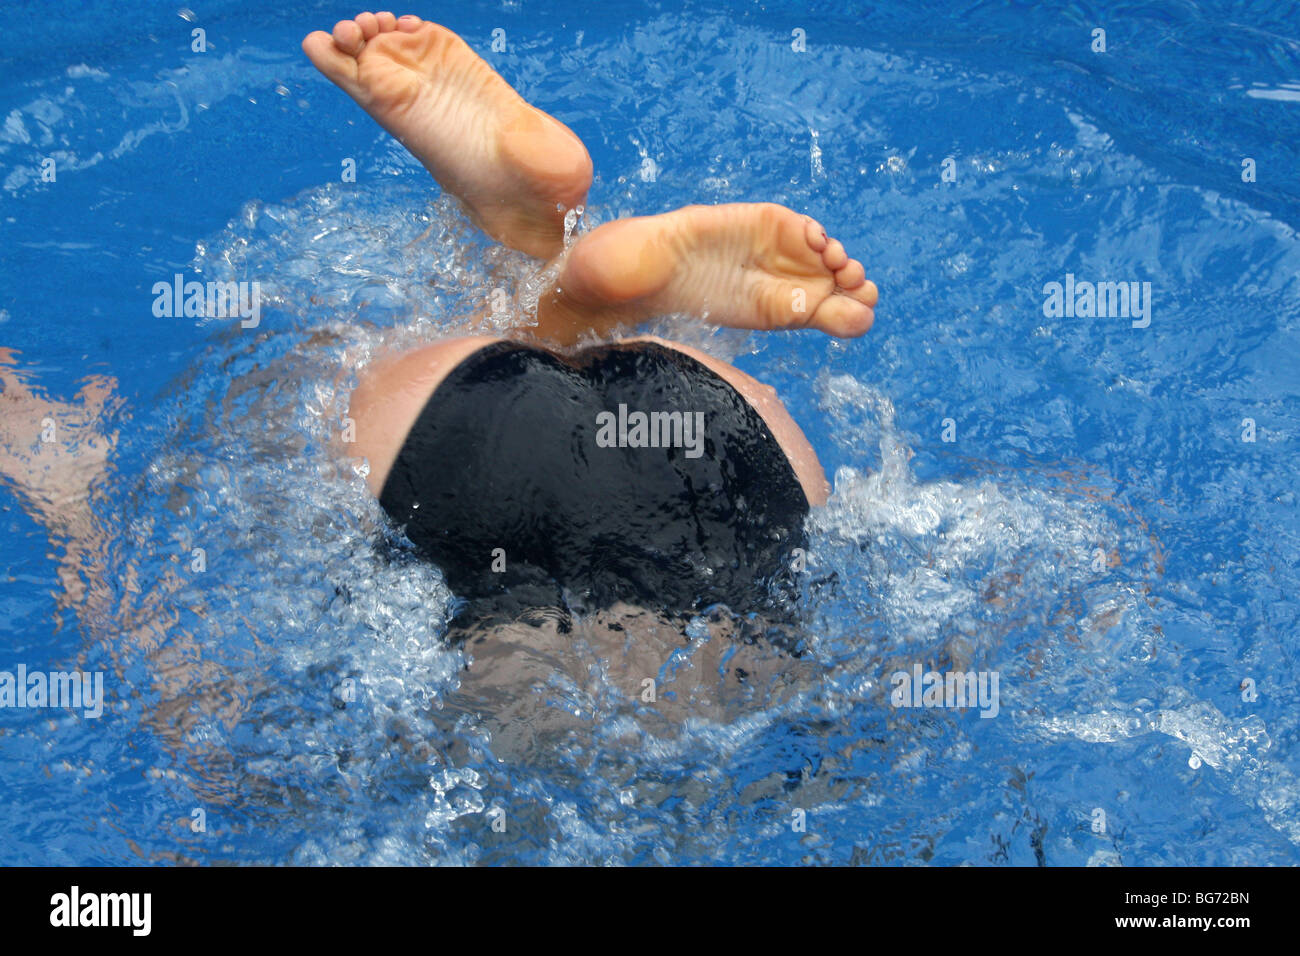 Teen Diving Into Pool With Feet Above Water Stock Photo